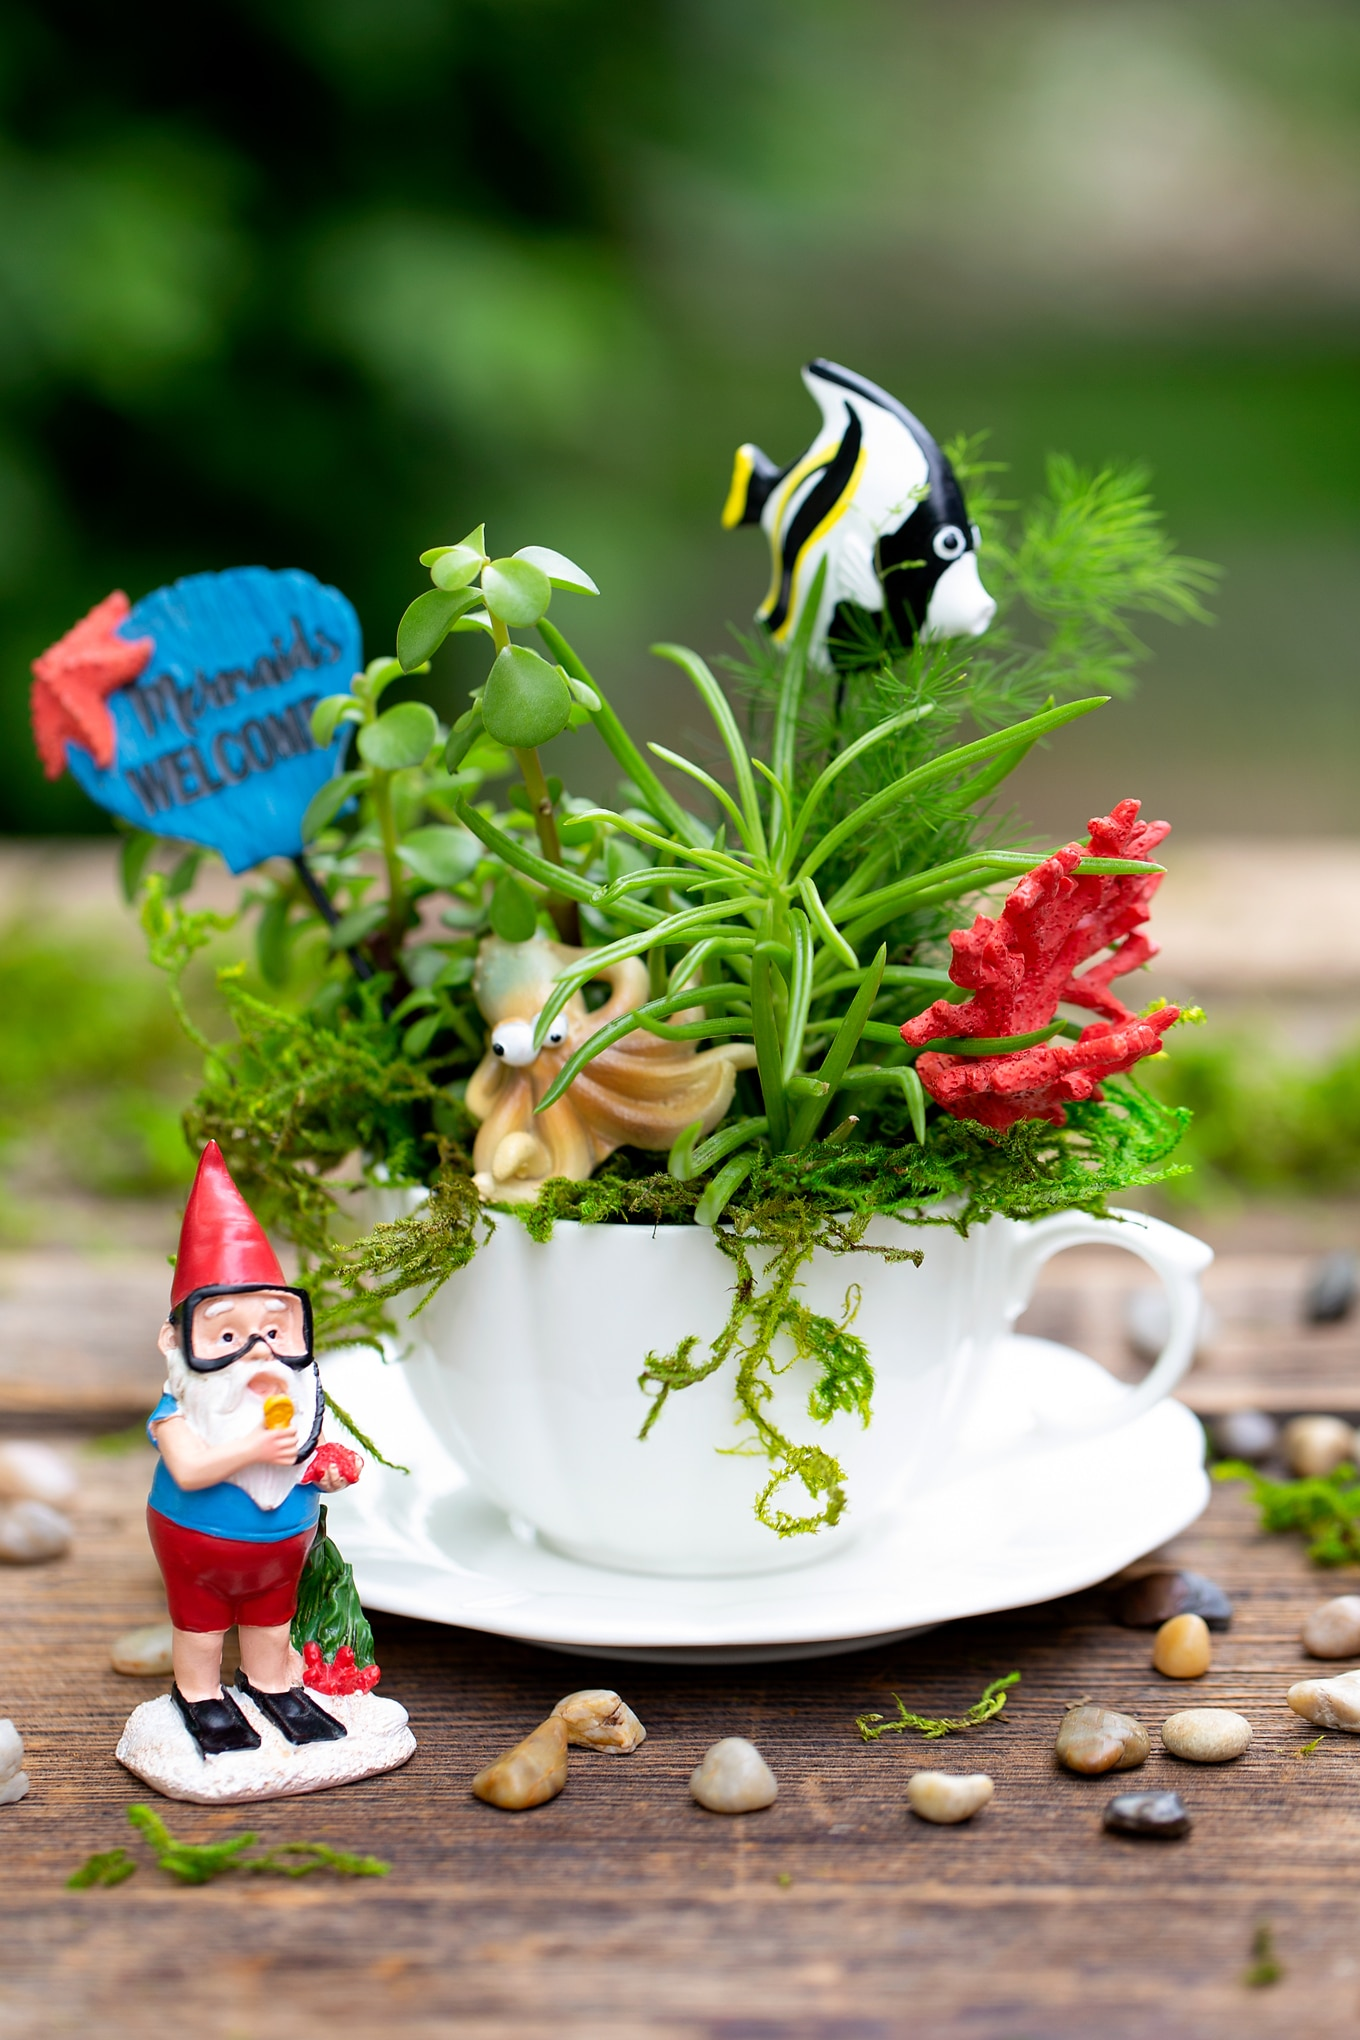 How to Make an Under the Sea Teacup Garden